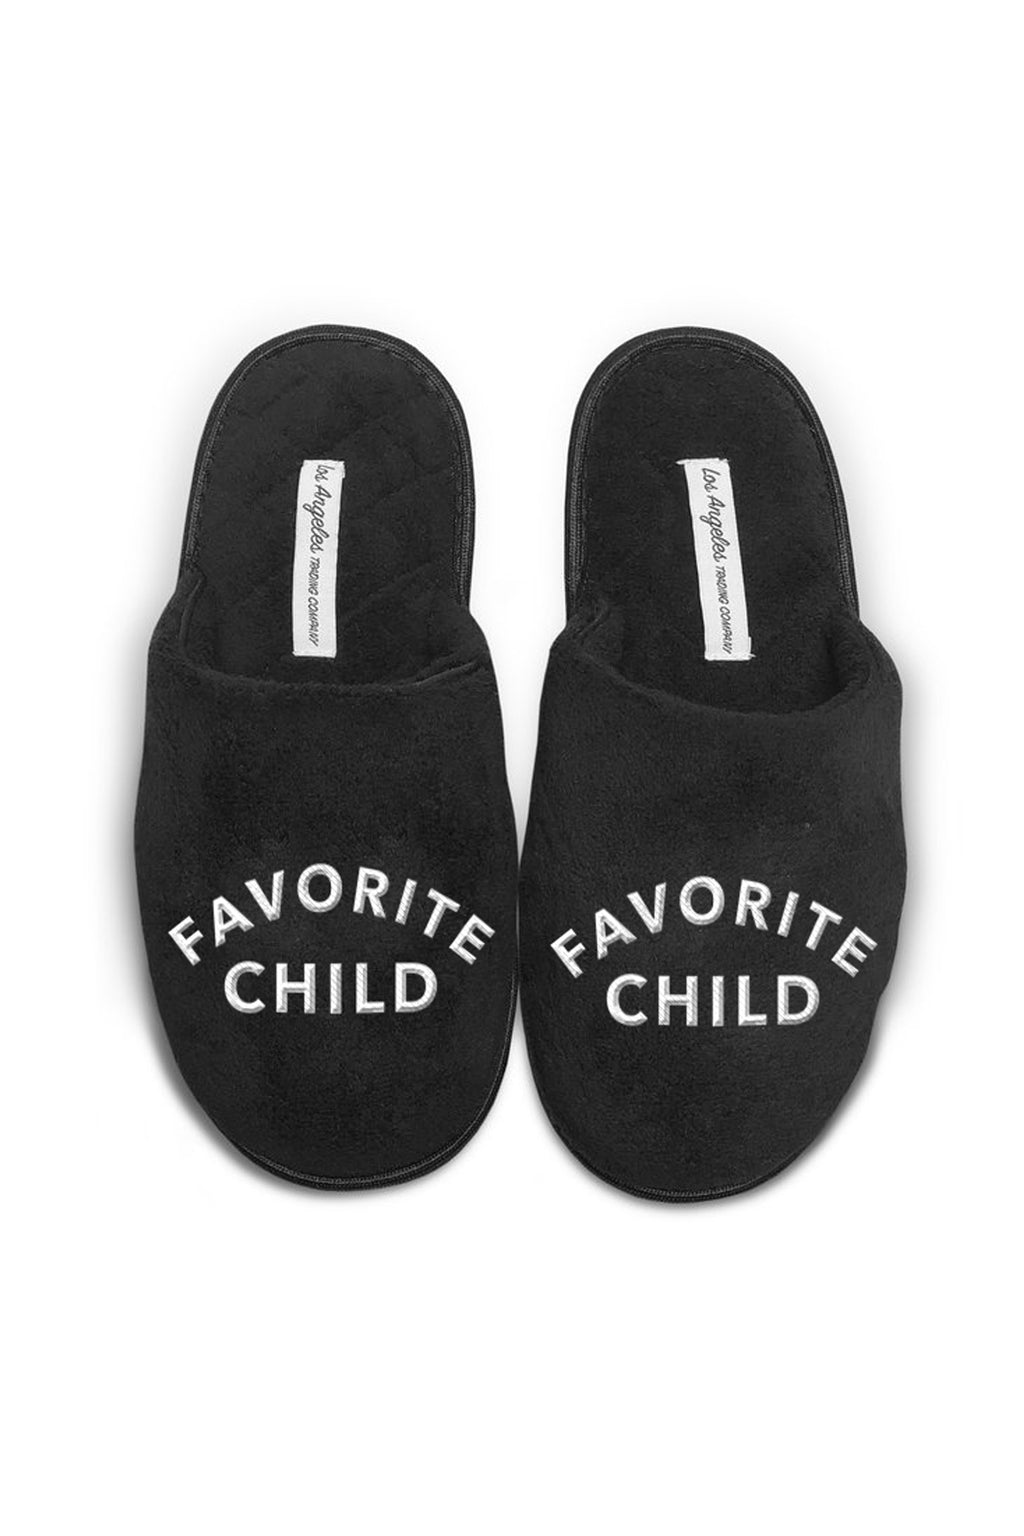 UNISEX SLIPPERS - Favorite Child